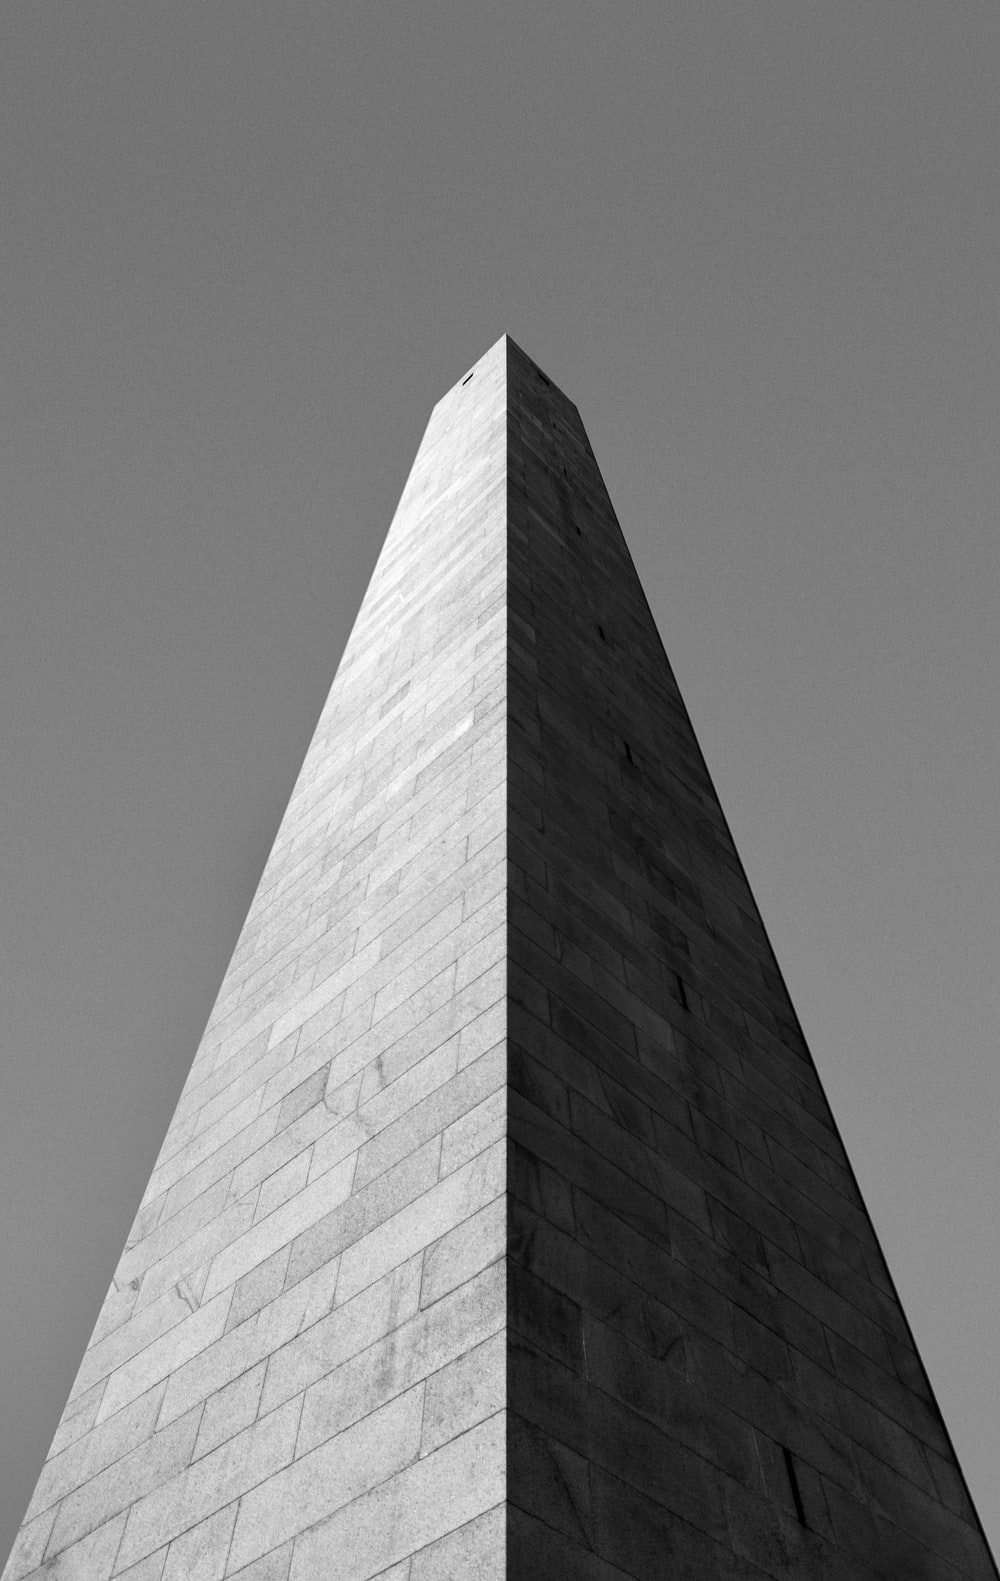 greyscale photo of tower